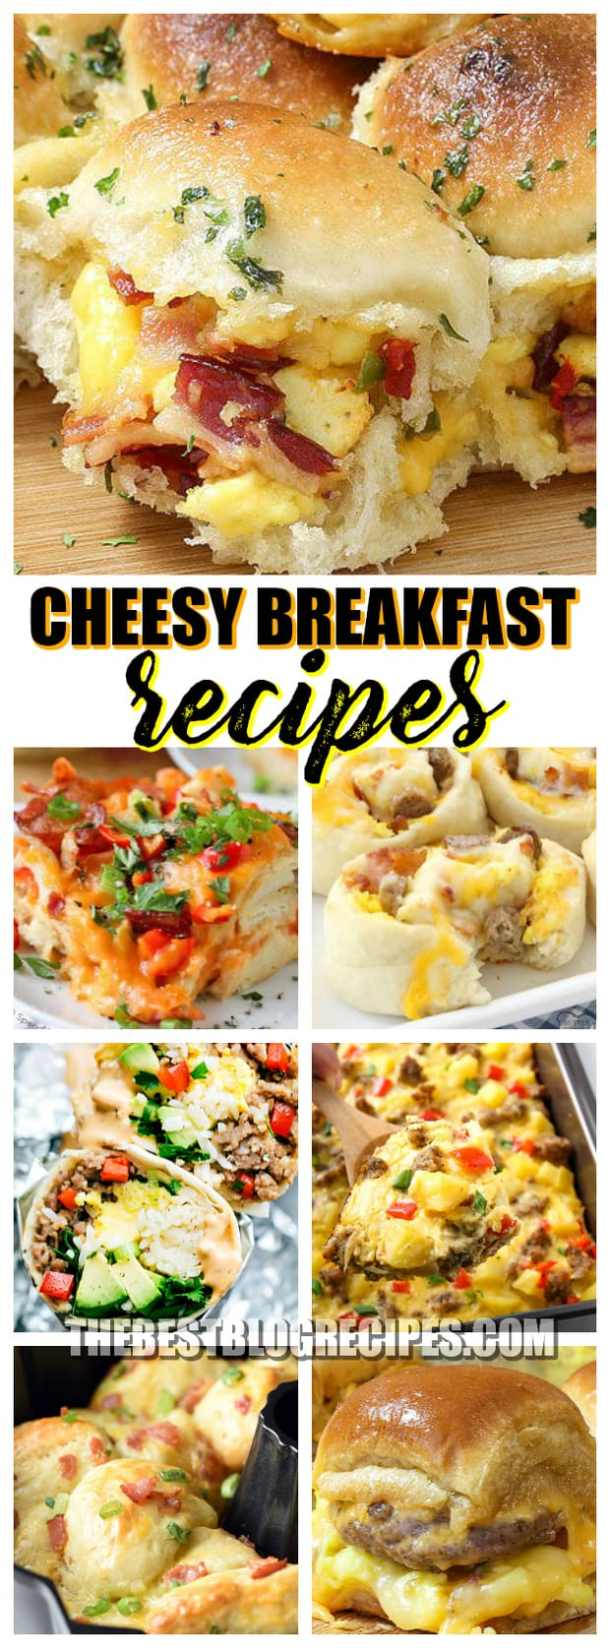 Cheesy Breakfast Recipes PERFECT for Saturday Mornings